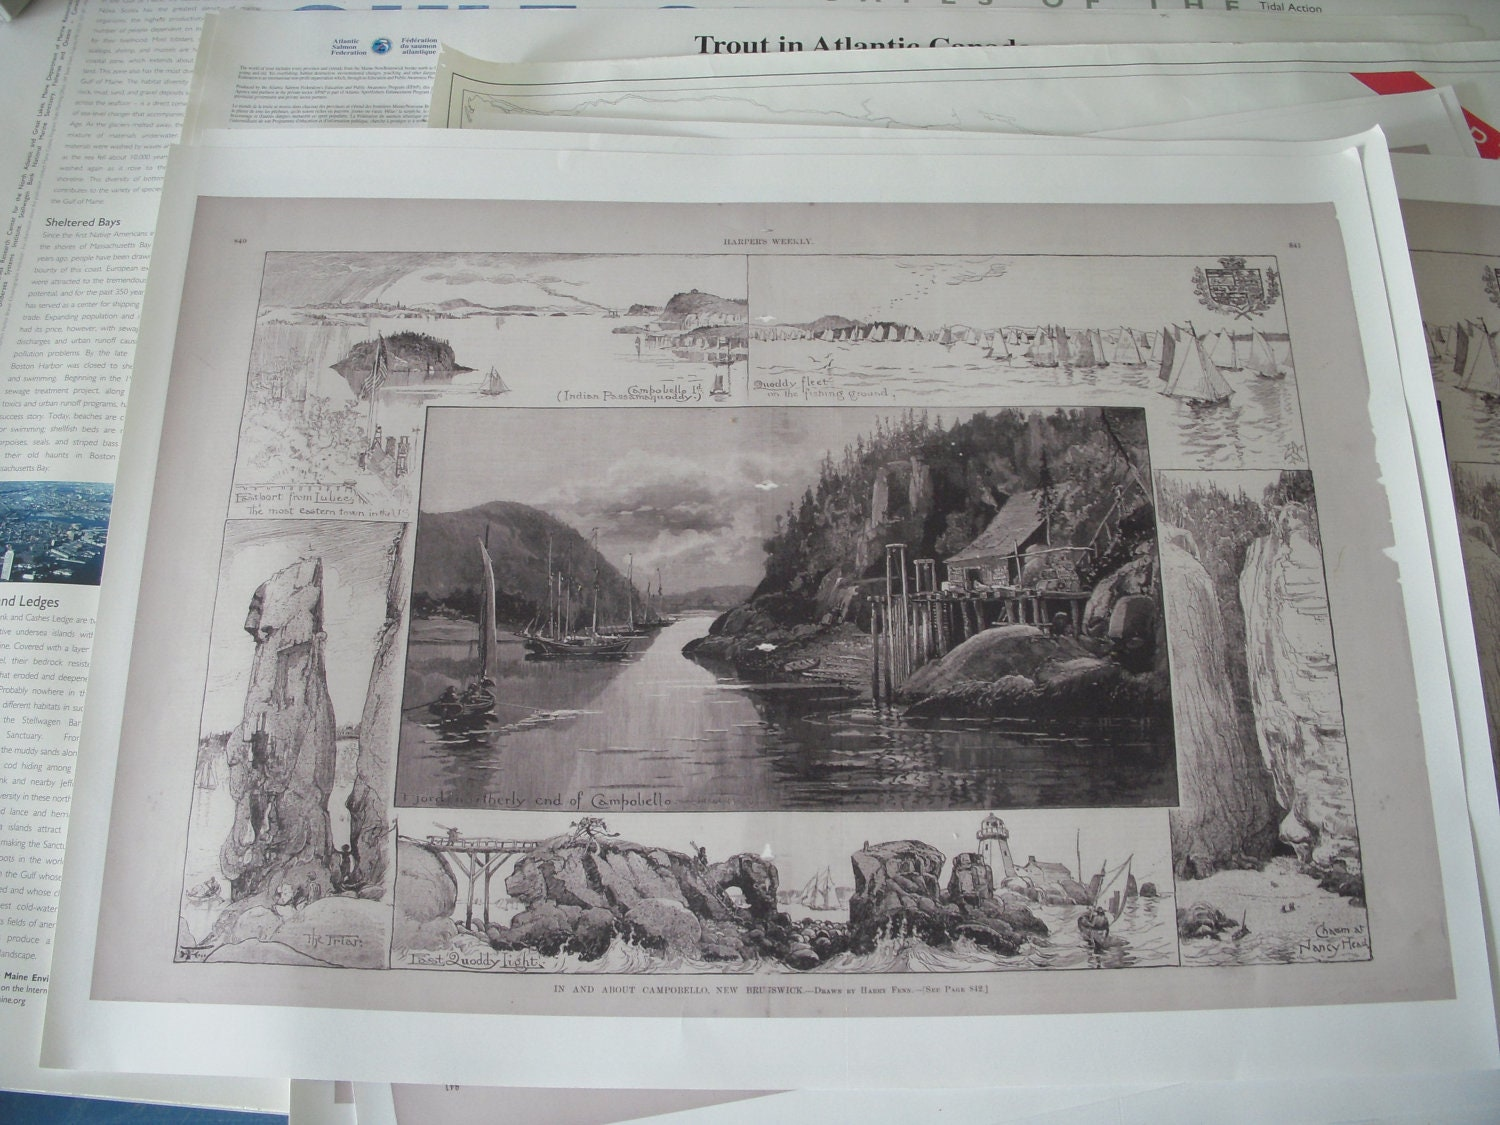 POSTER: Drawings of Campobello Island - Harper's Weekly late 1800s